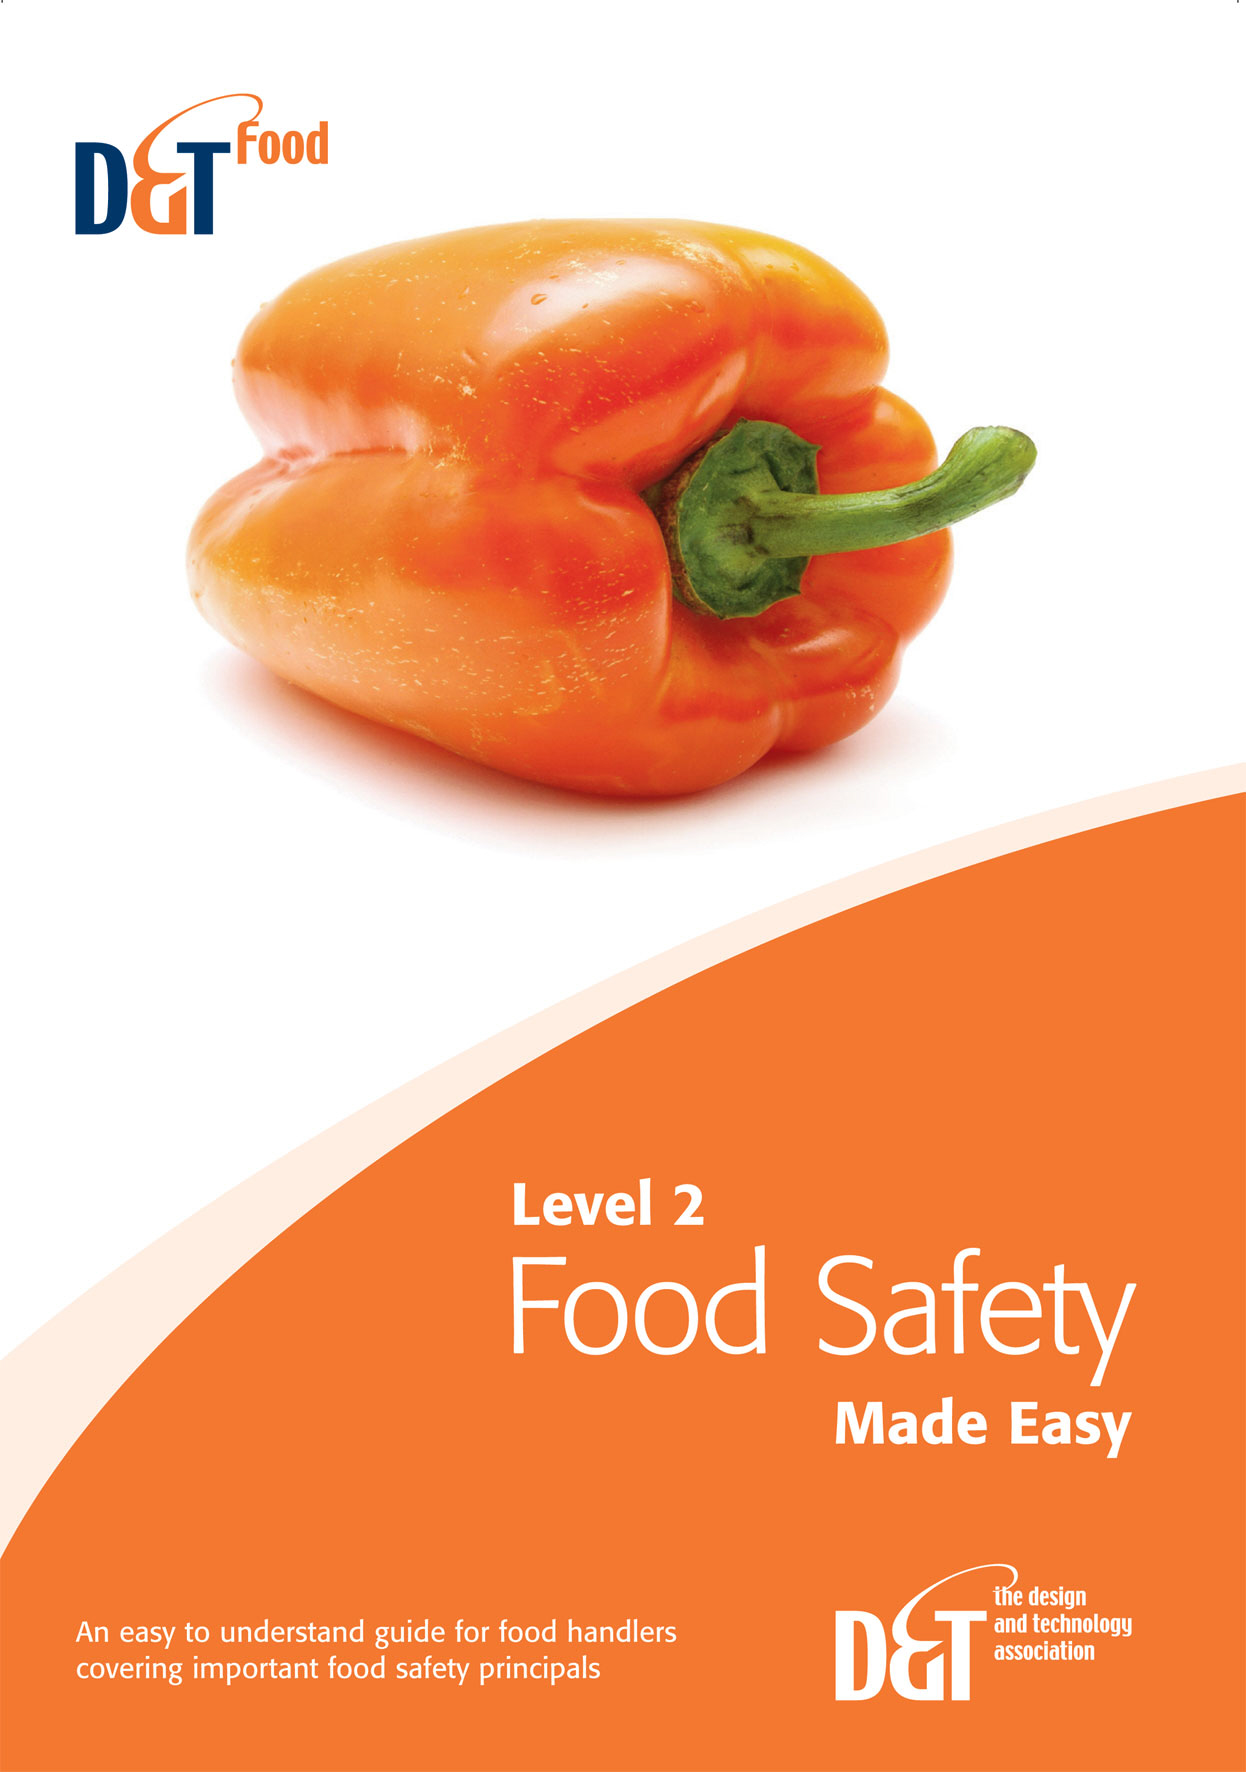 2 5 food saftey 2 ensuring food safety and nutrition related matters   5 non-state research  institutes, higher education institutions and universities to support.